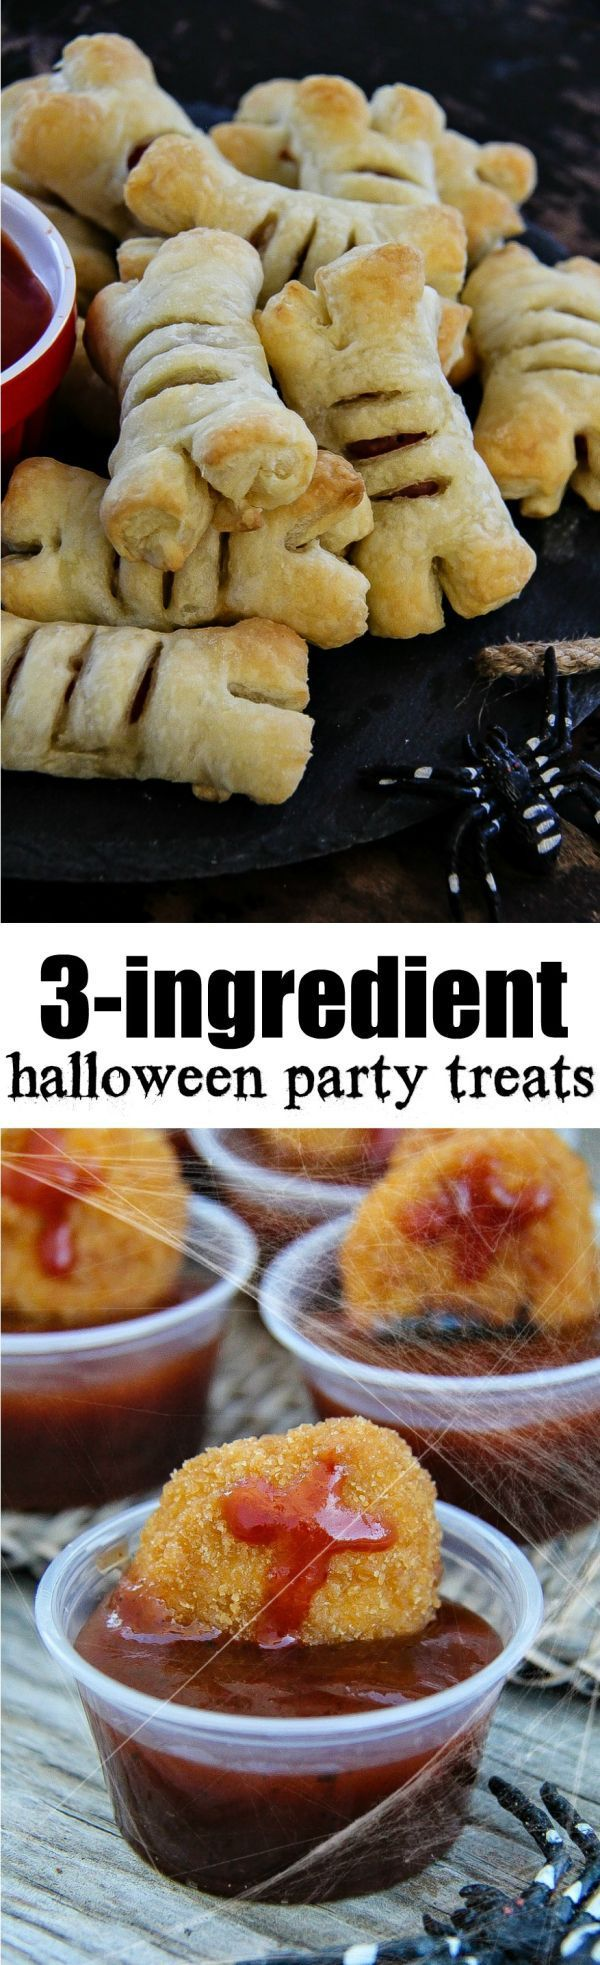 AD These quick and easy Halloween party food ideas only require 3 ingredients each and will be a hit with everyone. #ClubBash